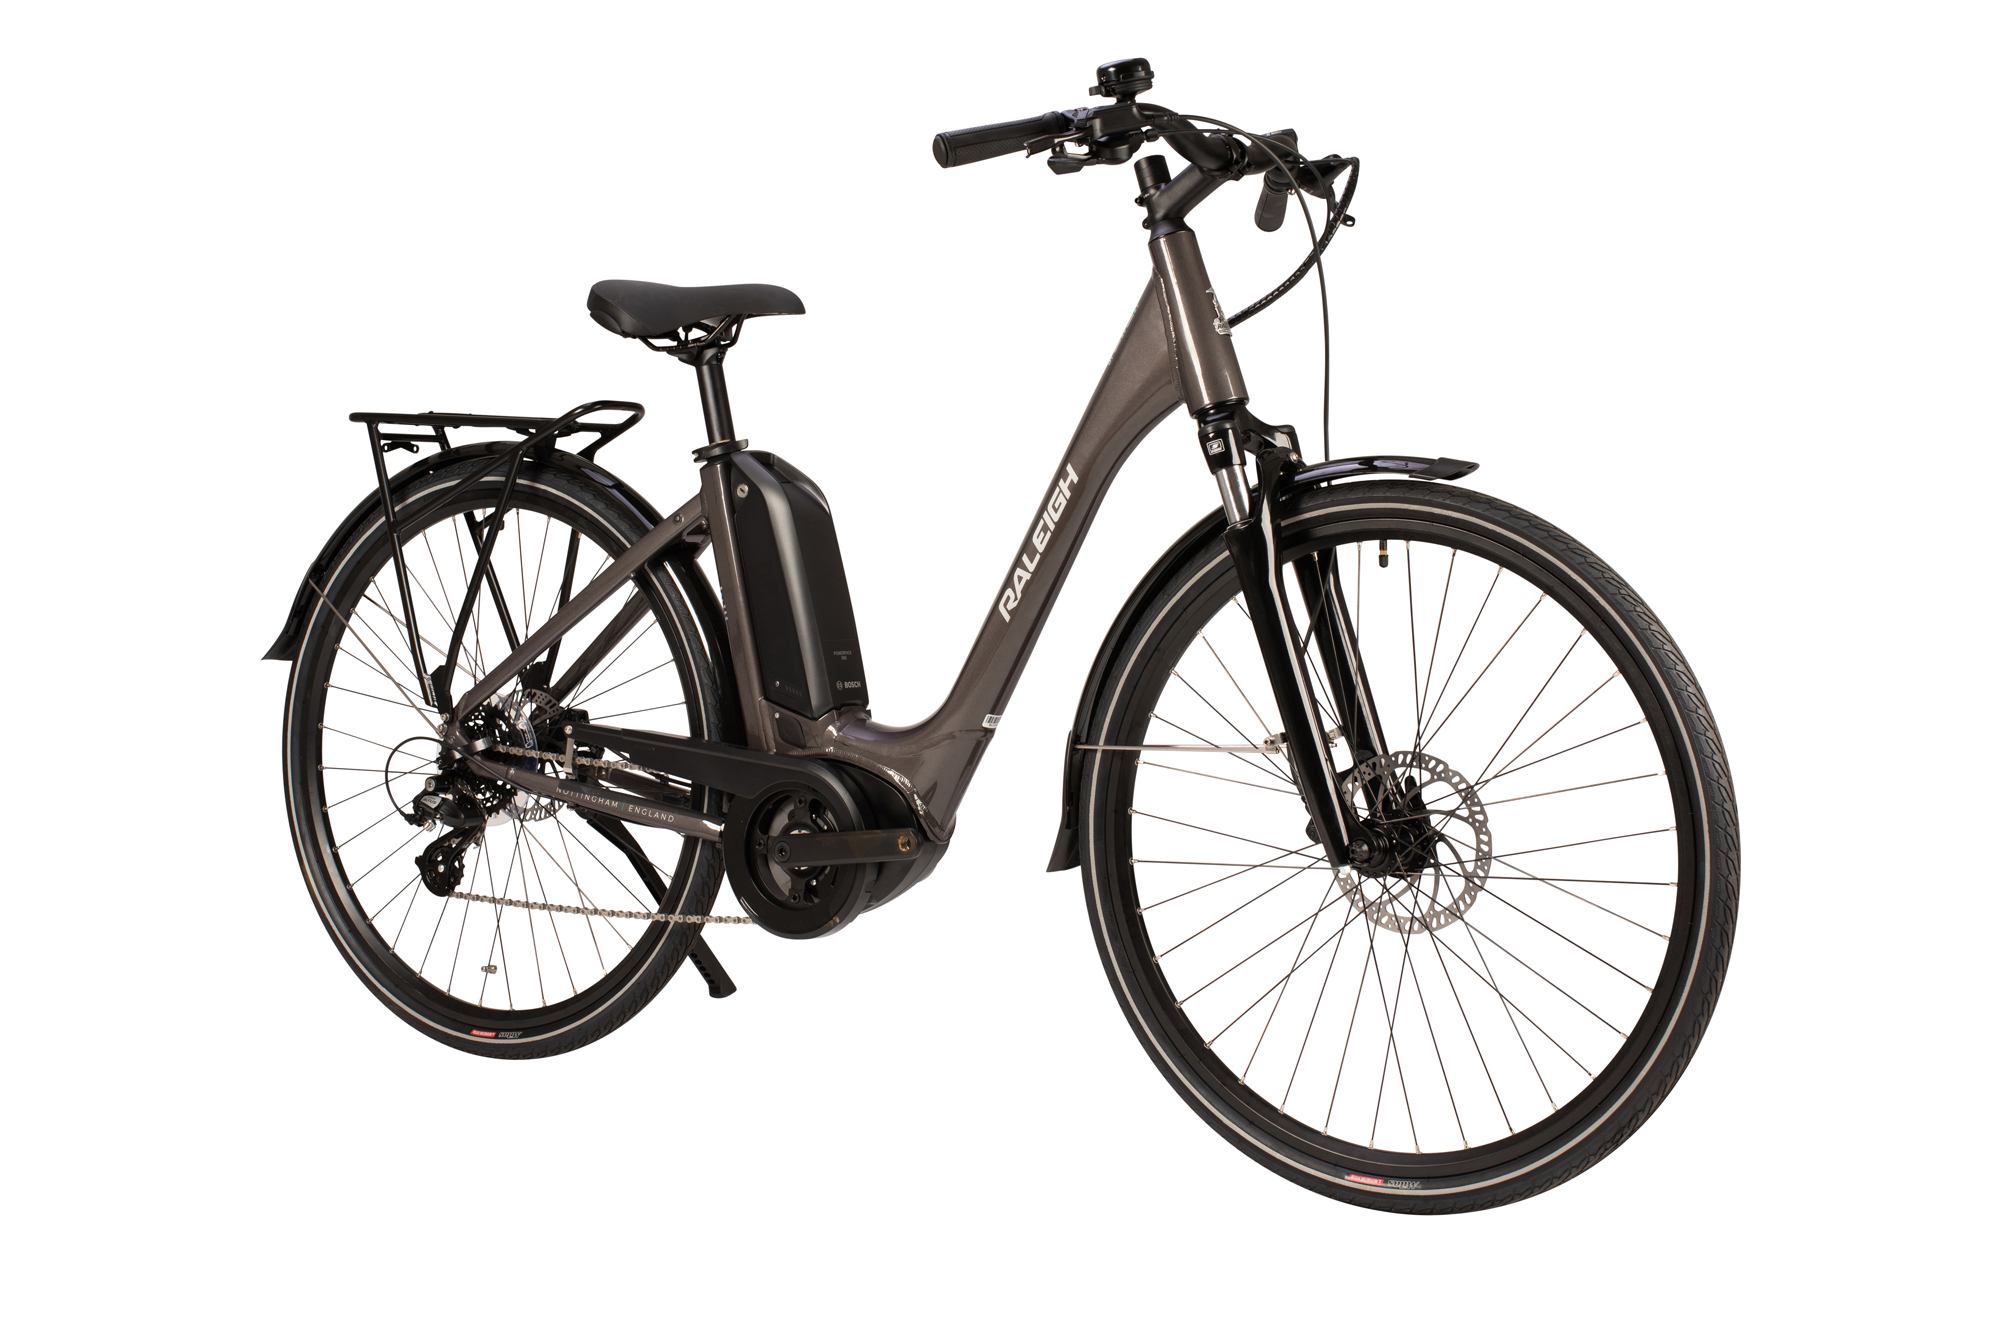 Side view of the Raleigh Motus Low Step electric bike in grey